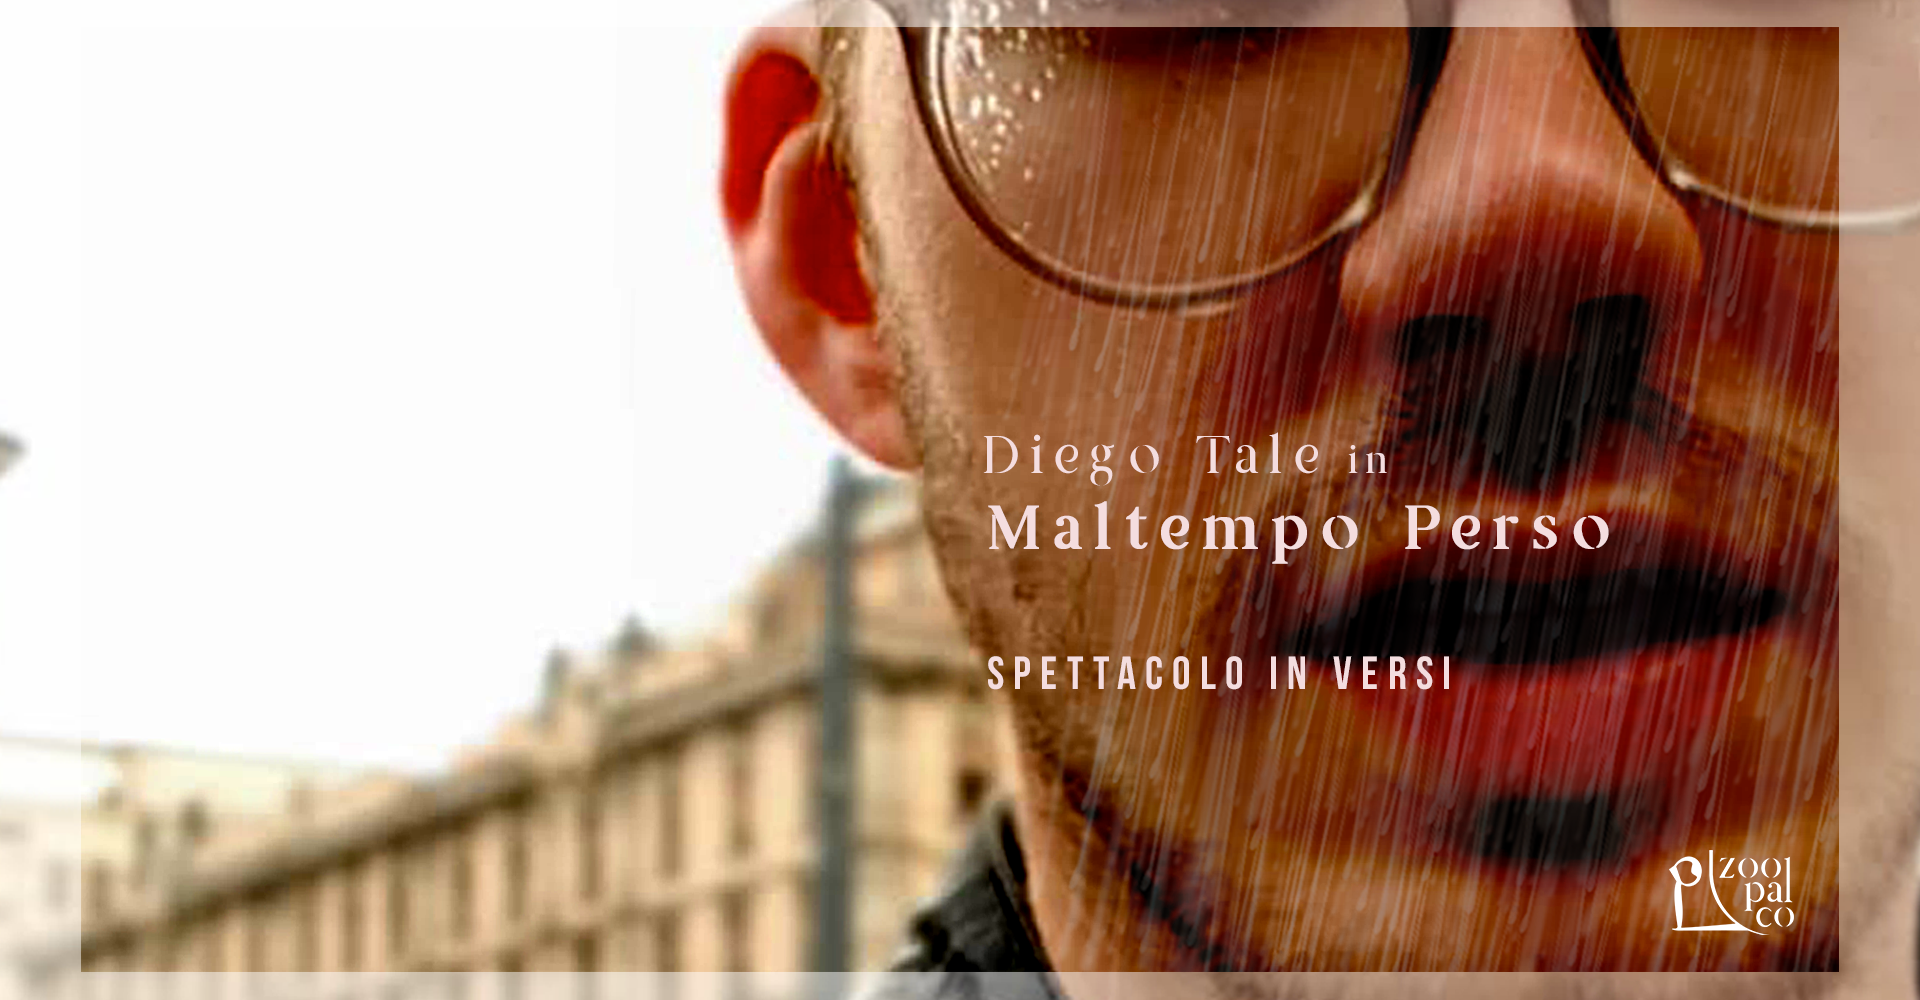 cover_fb_DiegoTale_MaltempoPerso